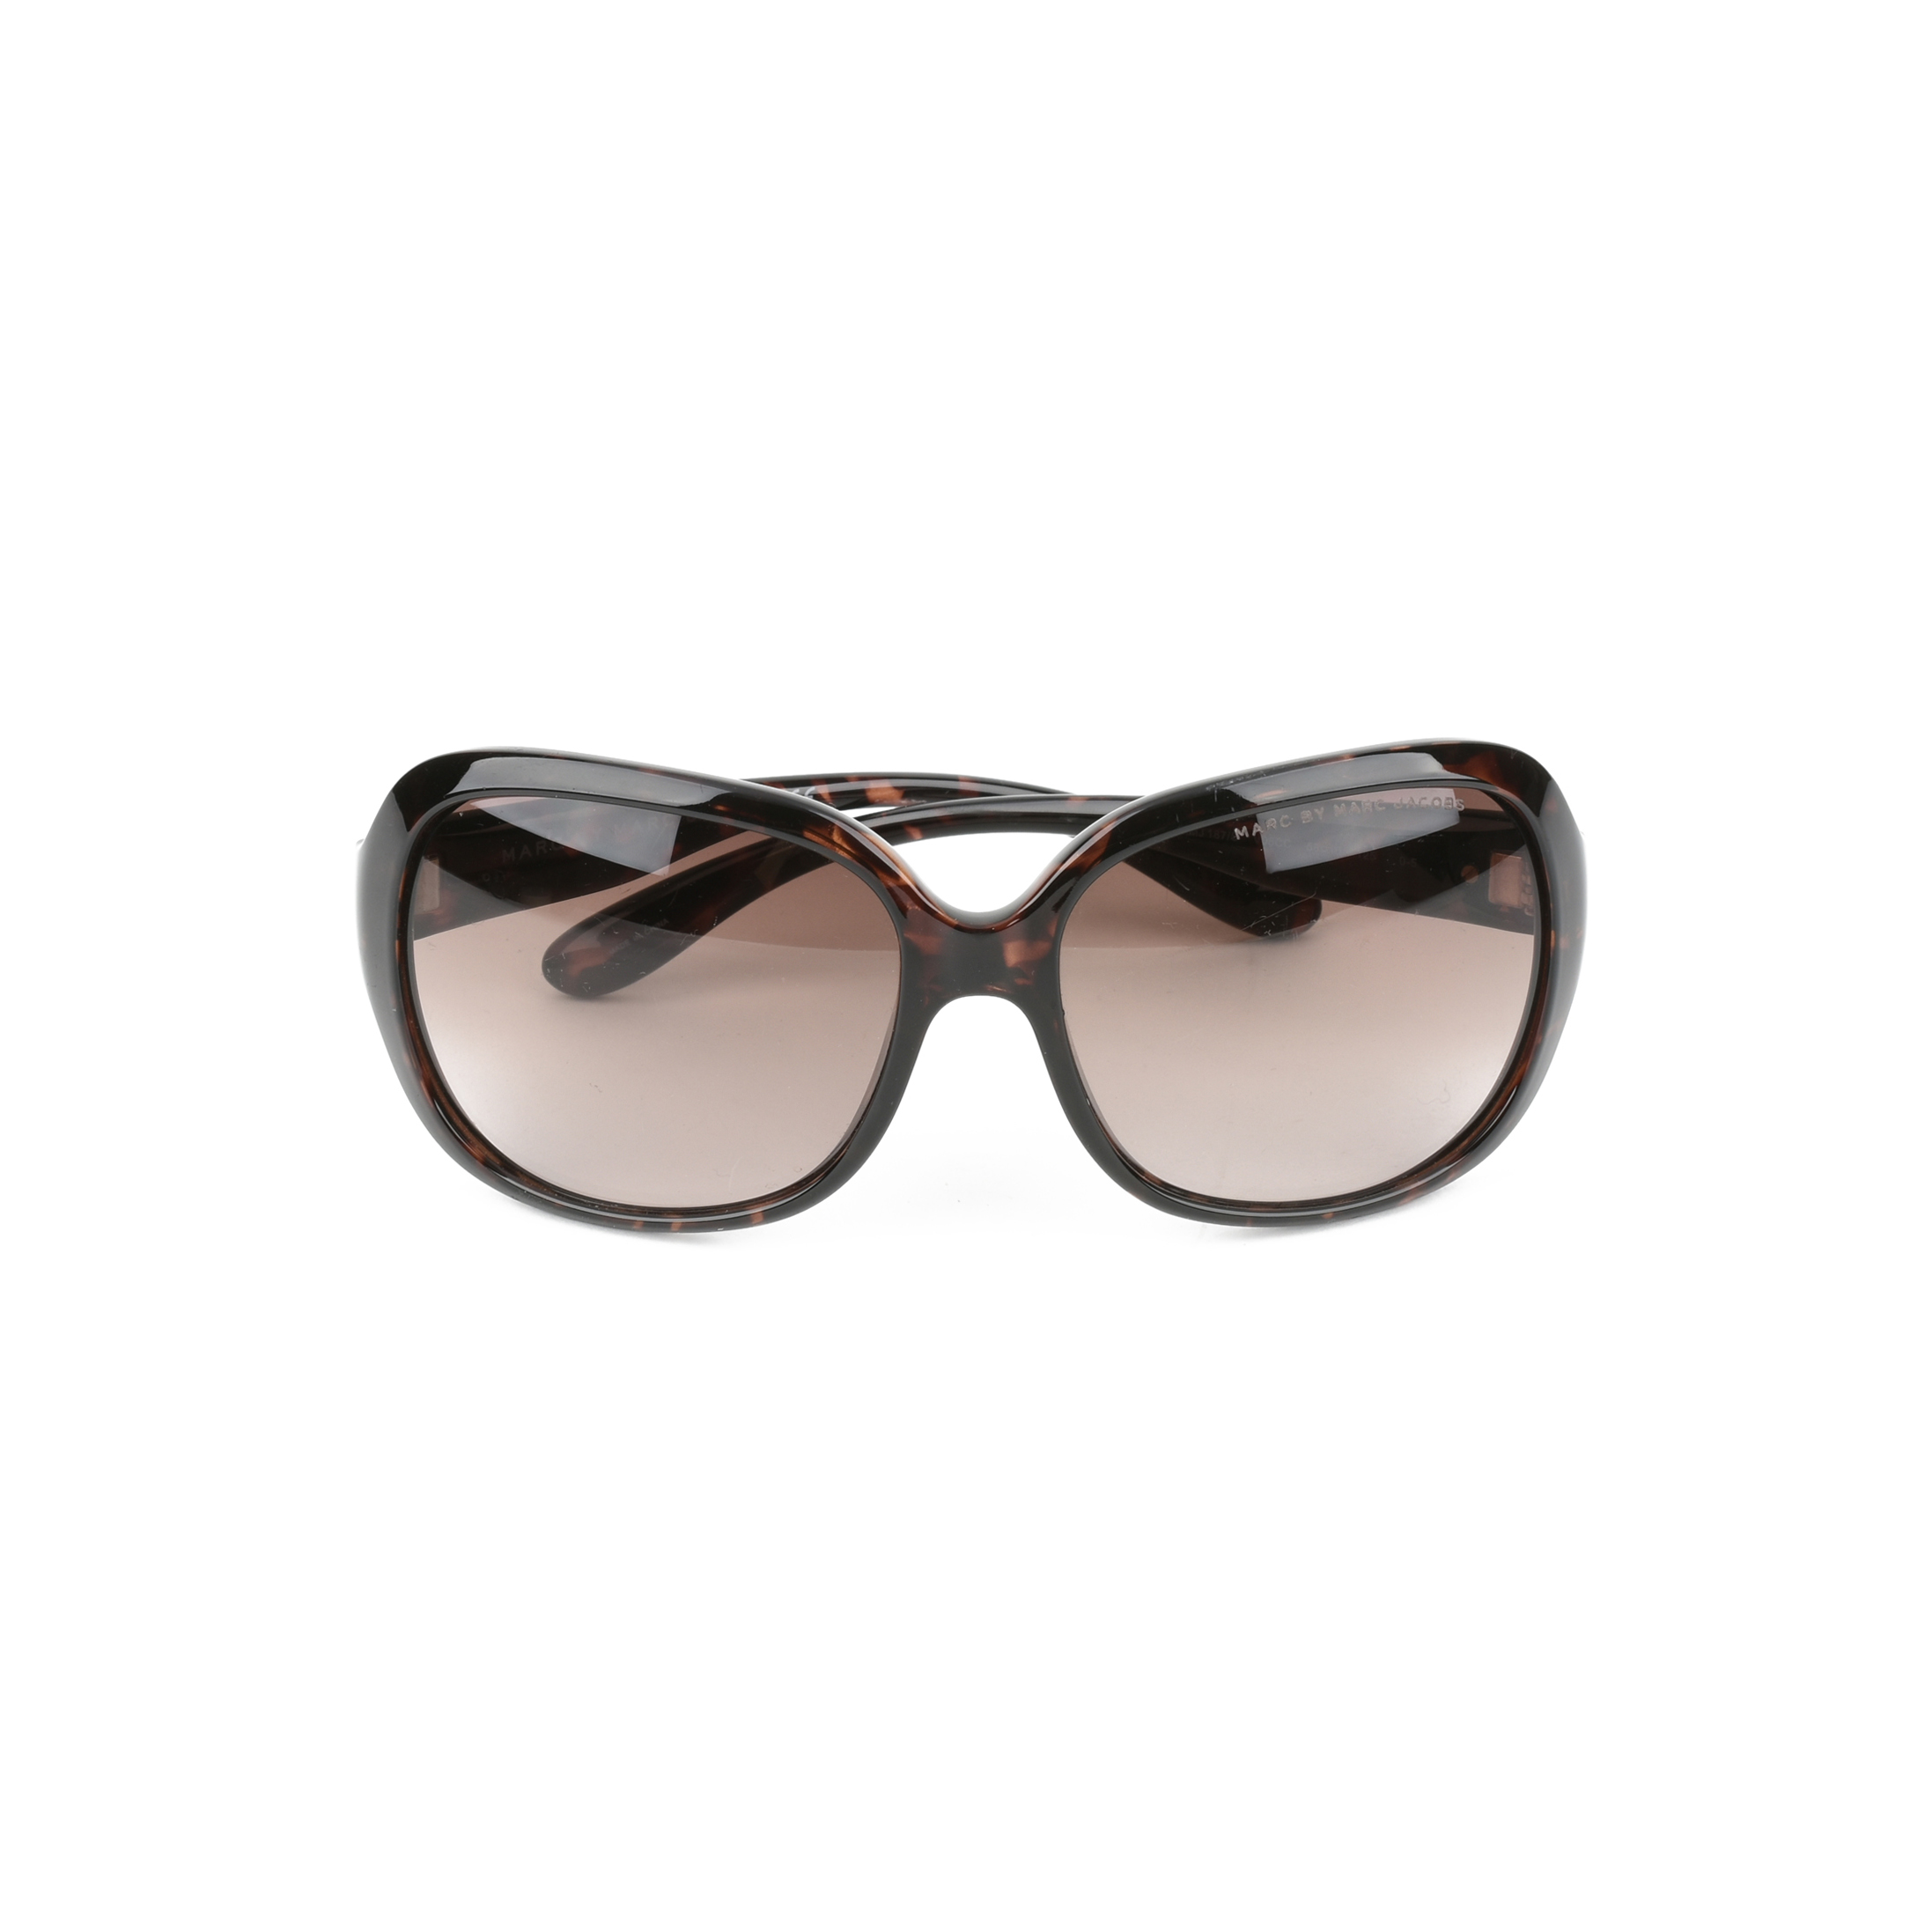 64904f21d8 Authentic Second Hand Marc by Marc Jacobs Round Frame Tortoise Shell  Sunglasses (PSS-153-00010)